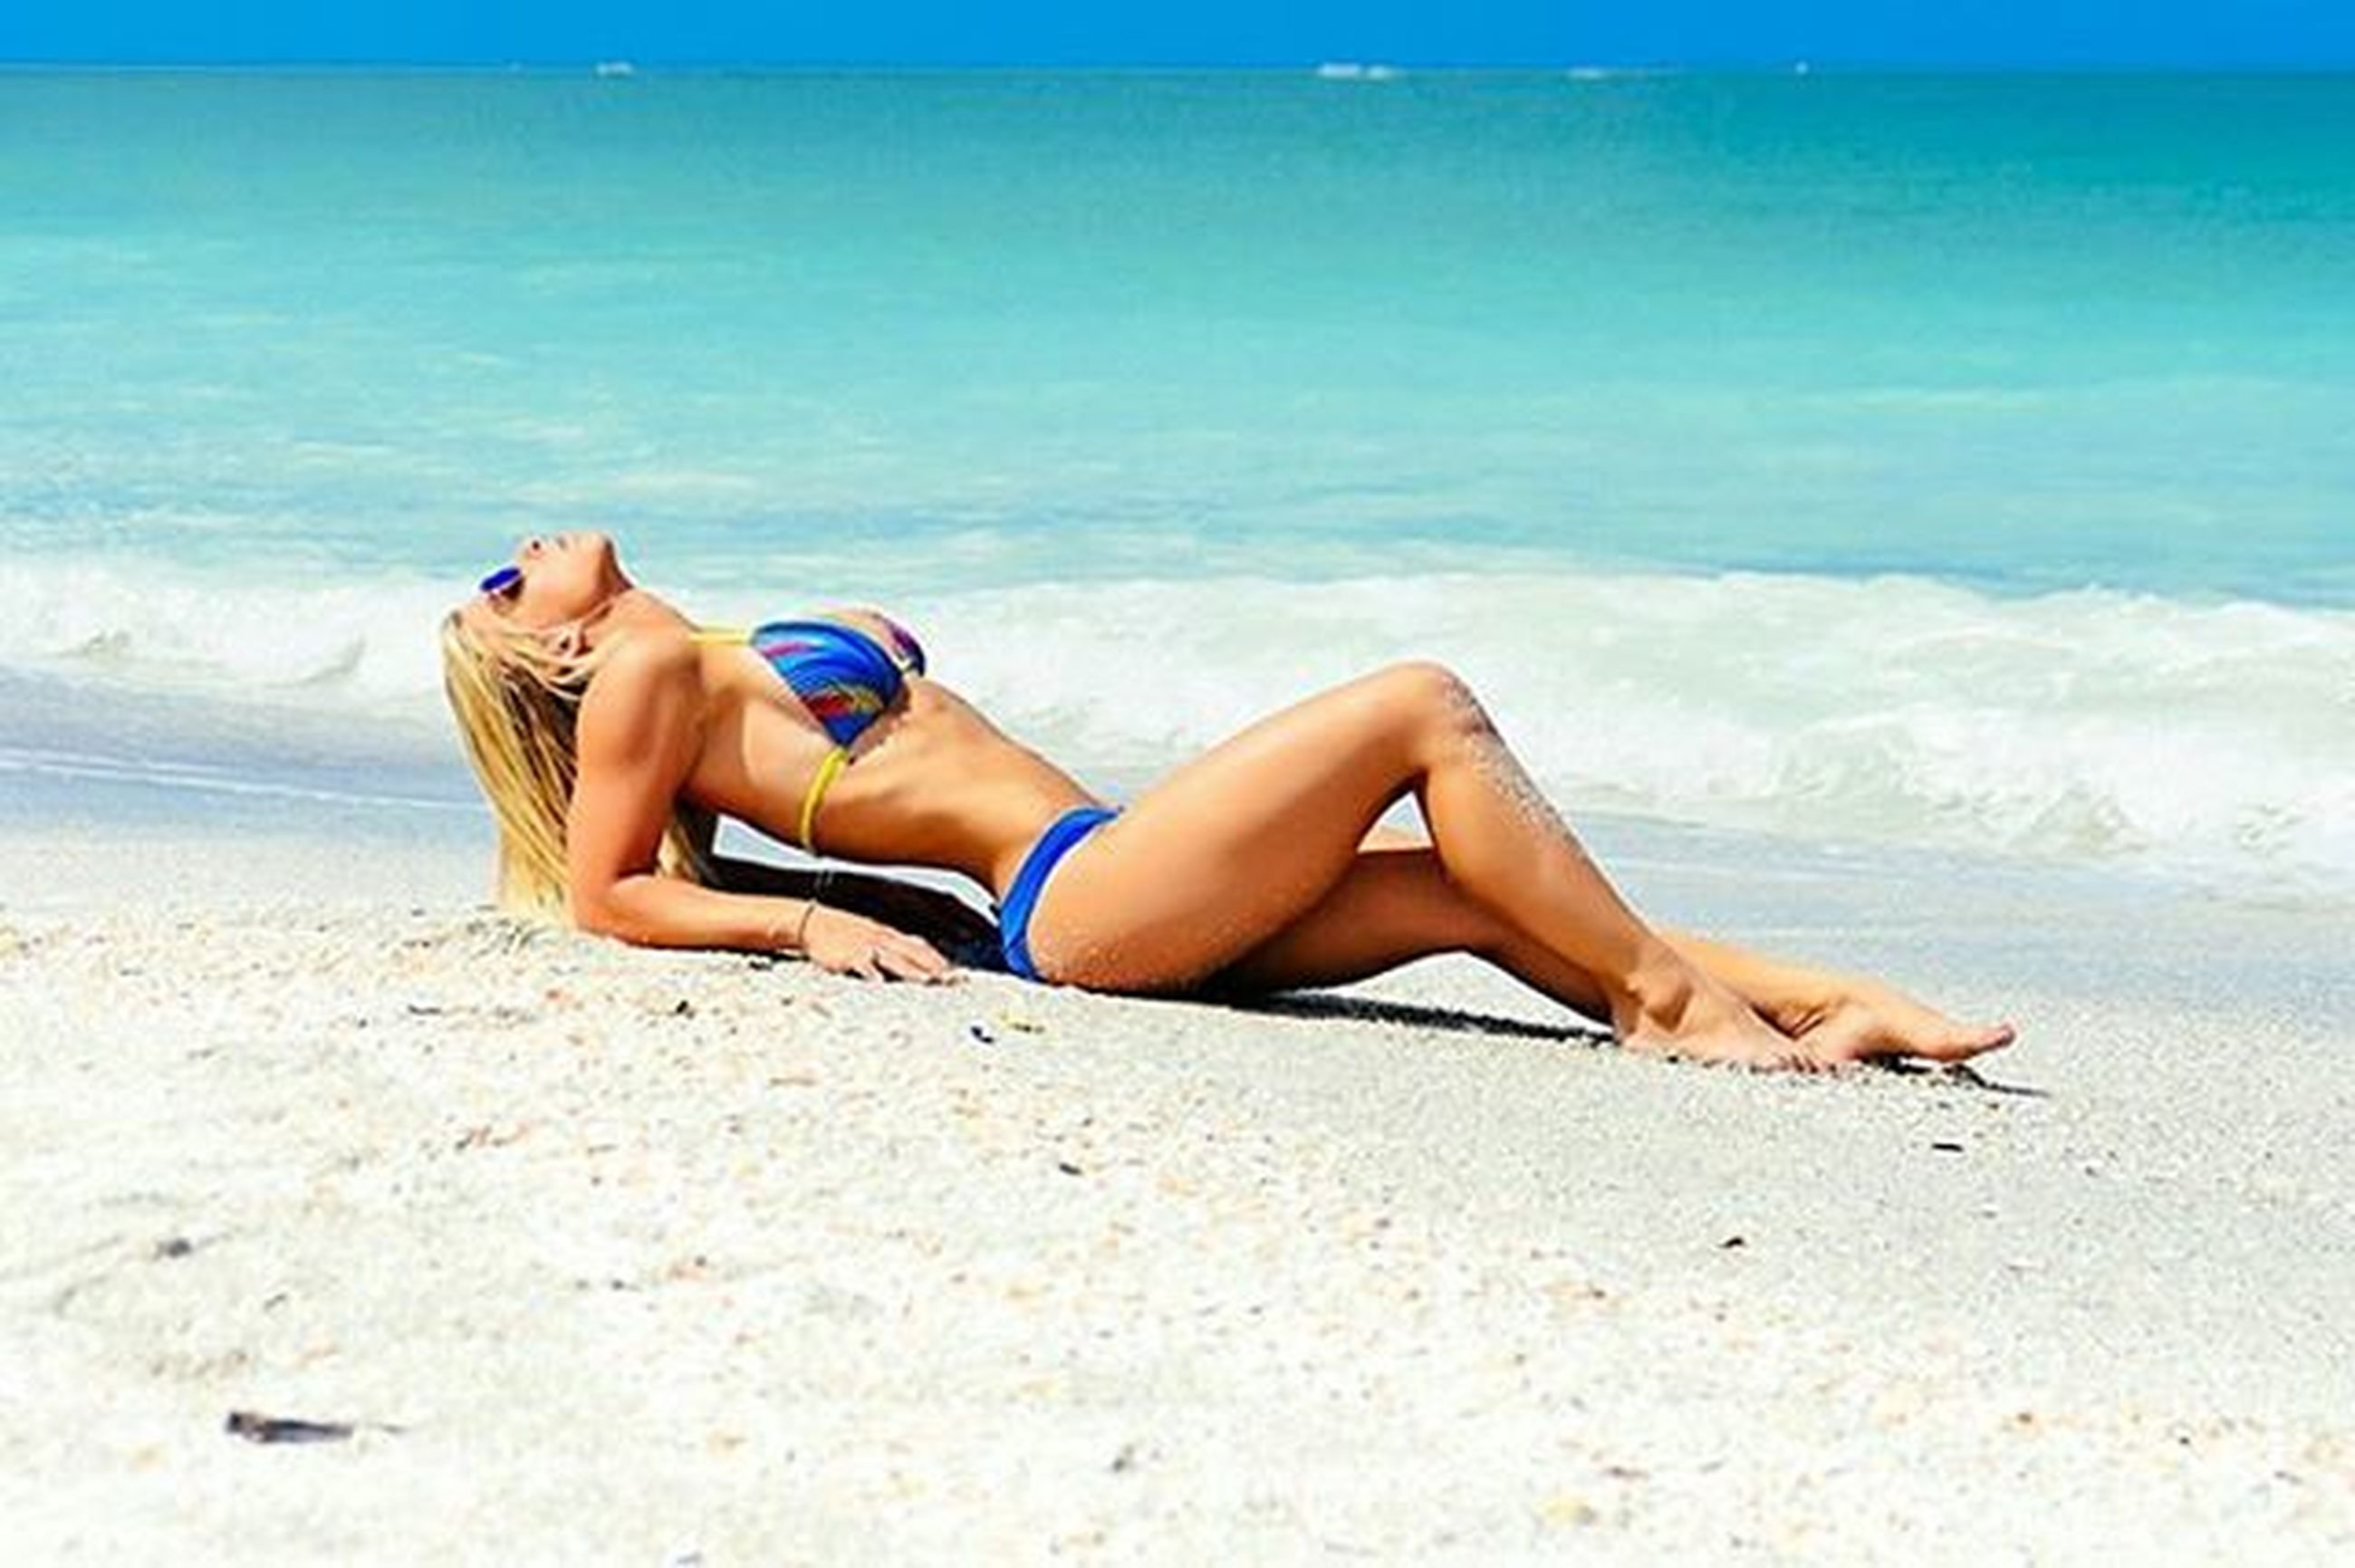 beach, relaxation, sea, sand, water, shore, vacations, lying down, resting, sitting, leisure activity, relaxing, lifestyles, summer, barefoot, low section, person, horizon over water